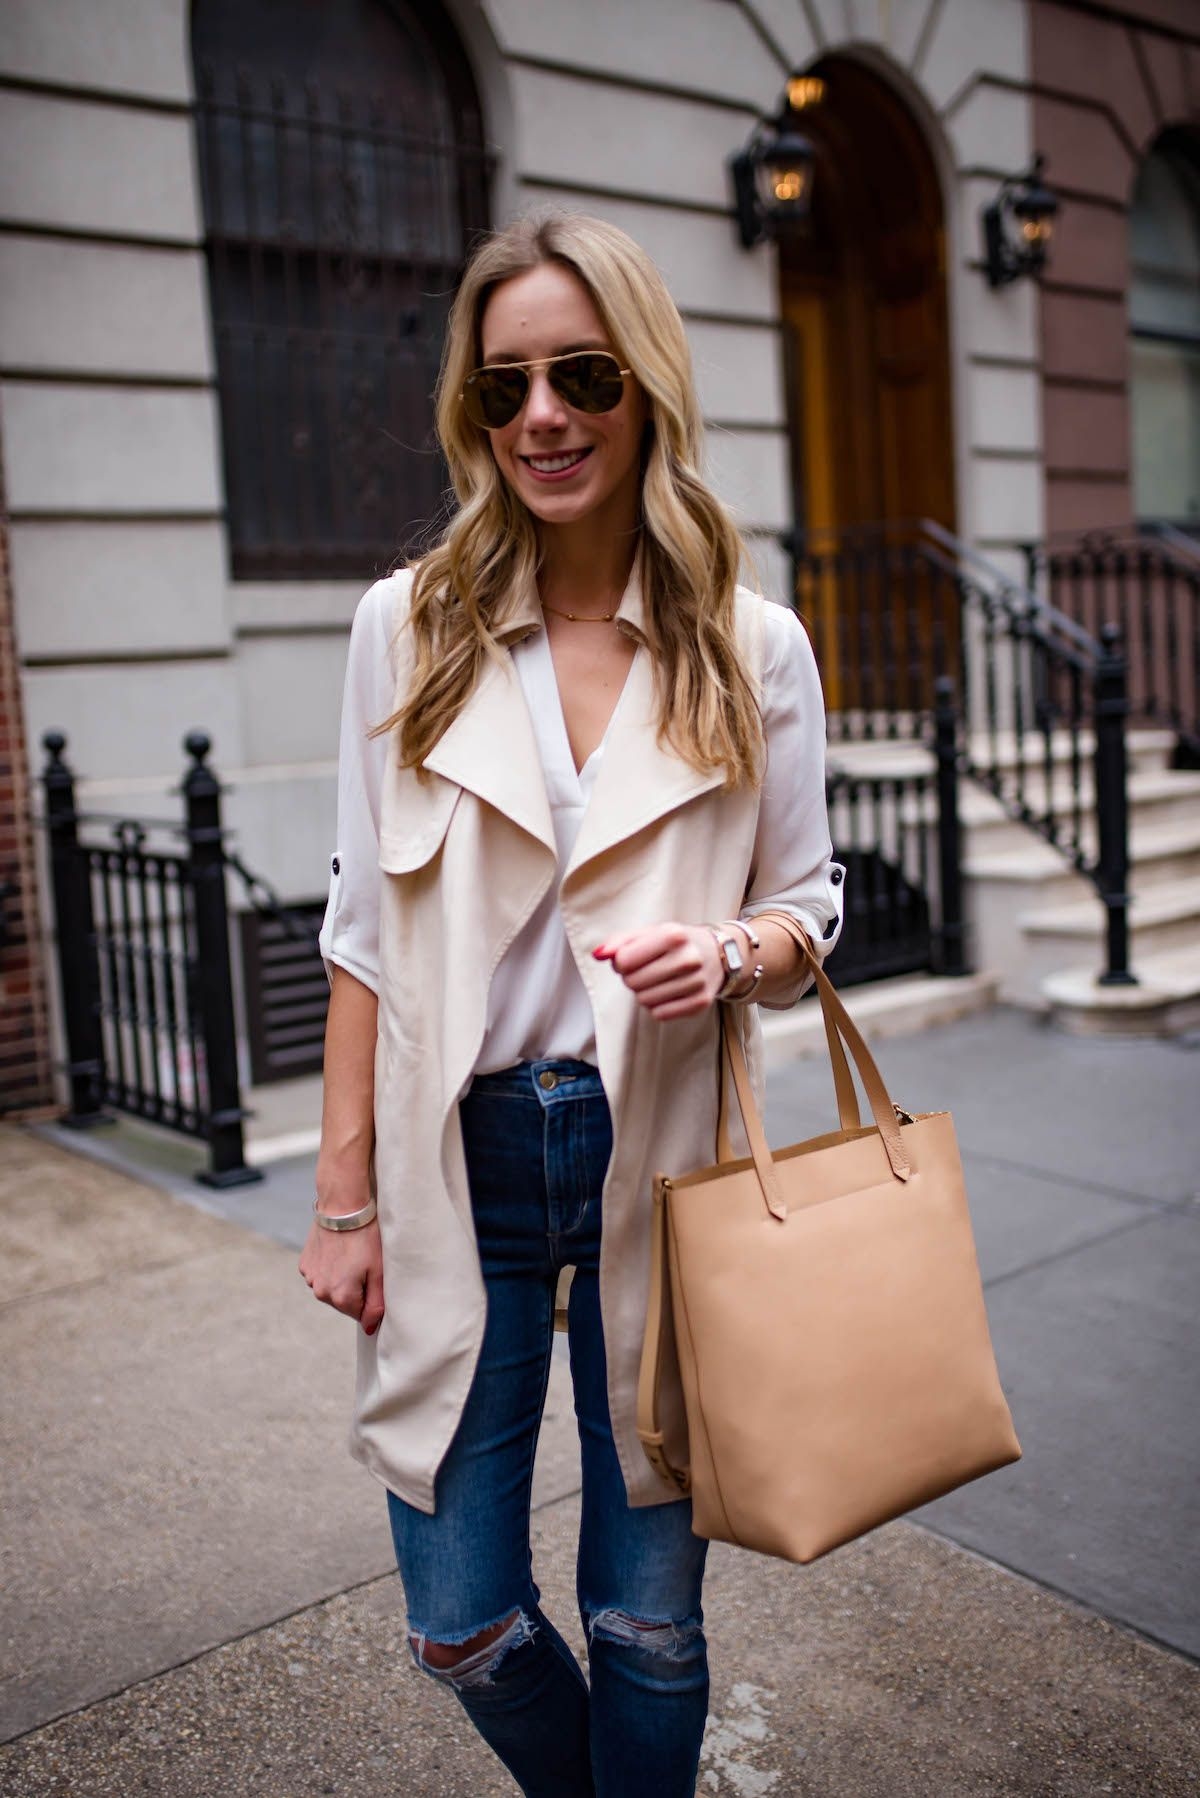 cd7005777 Madewell Medium Leather Transport Tote | Everyday Fashion in 2019 ...